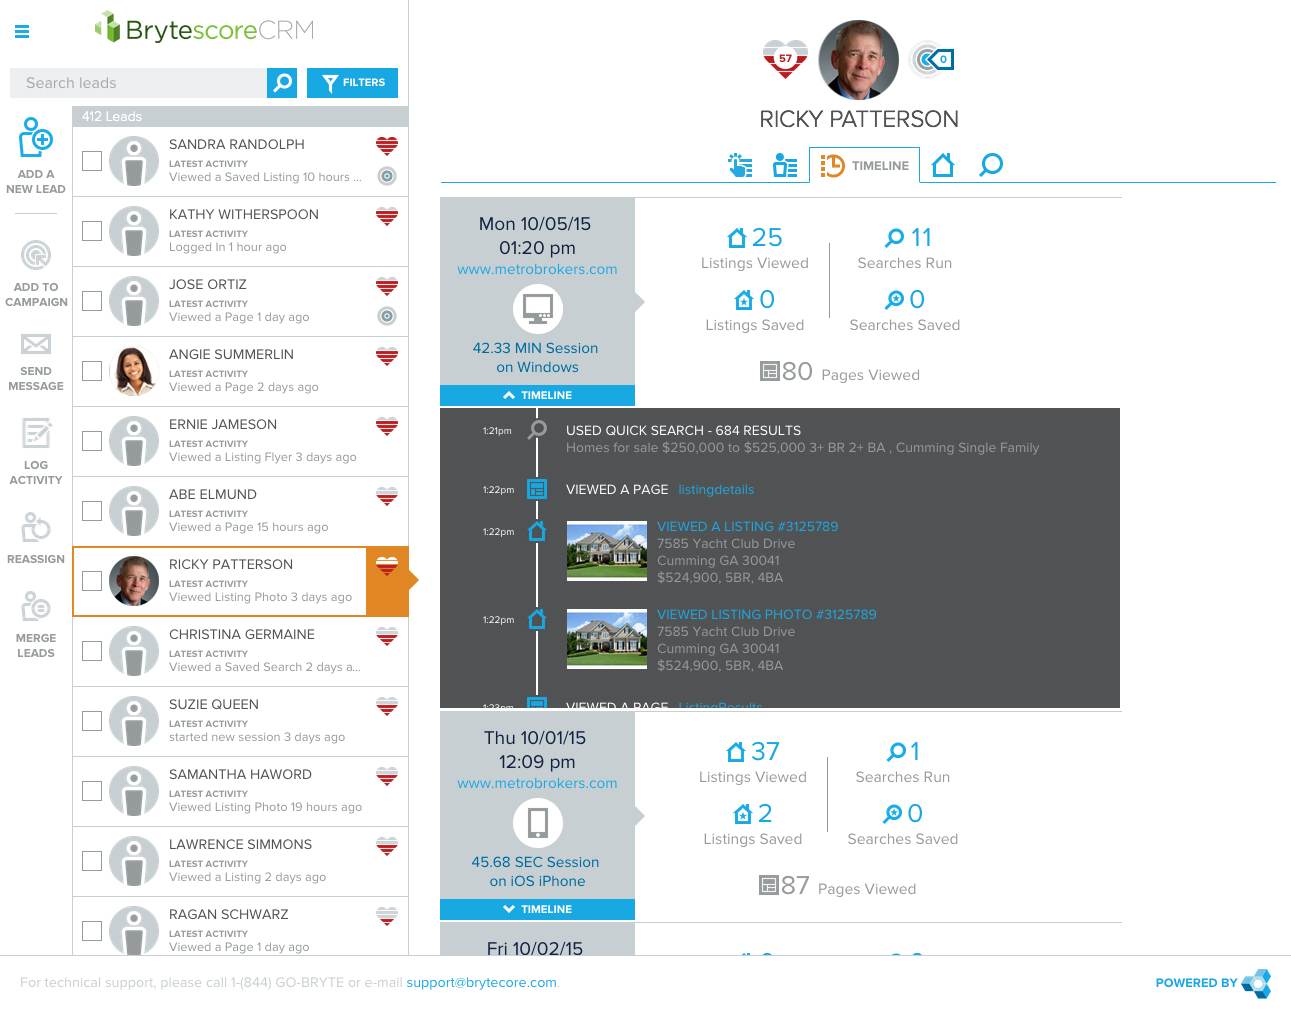 Screen shot showing Brytescore lead profile in Brytecore's CRM.